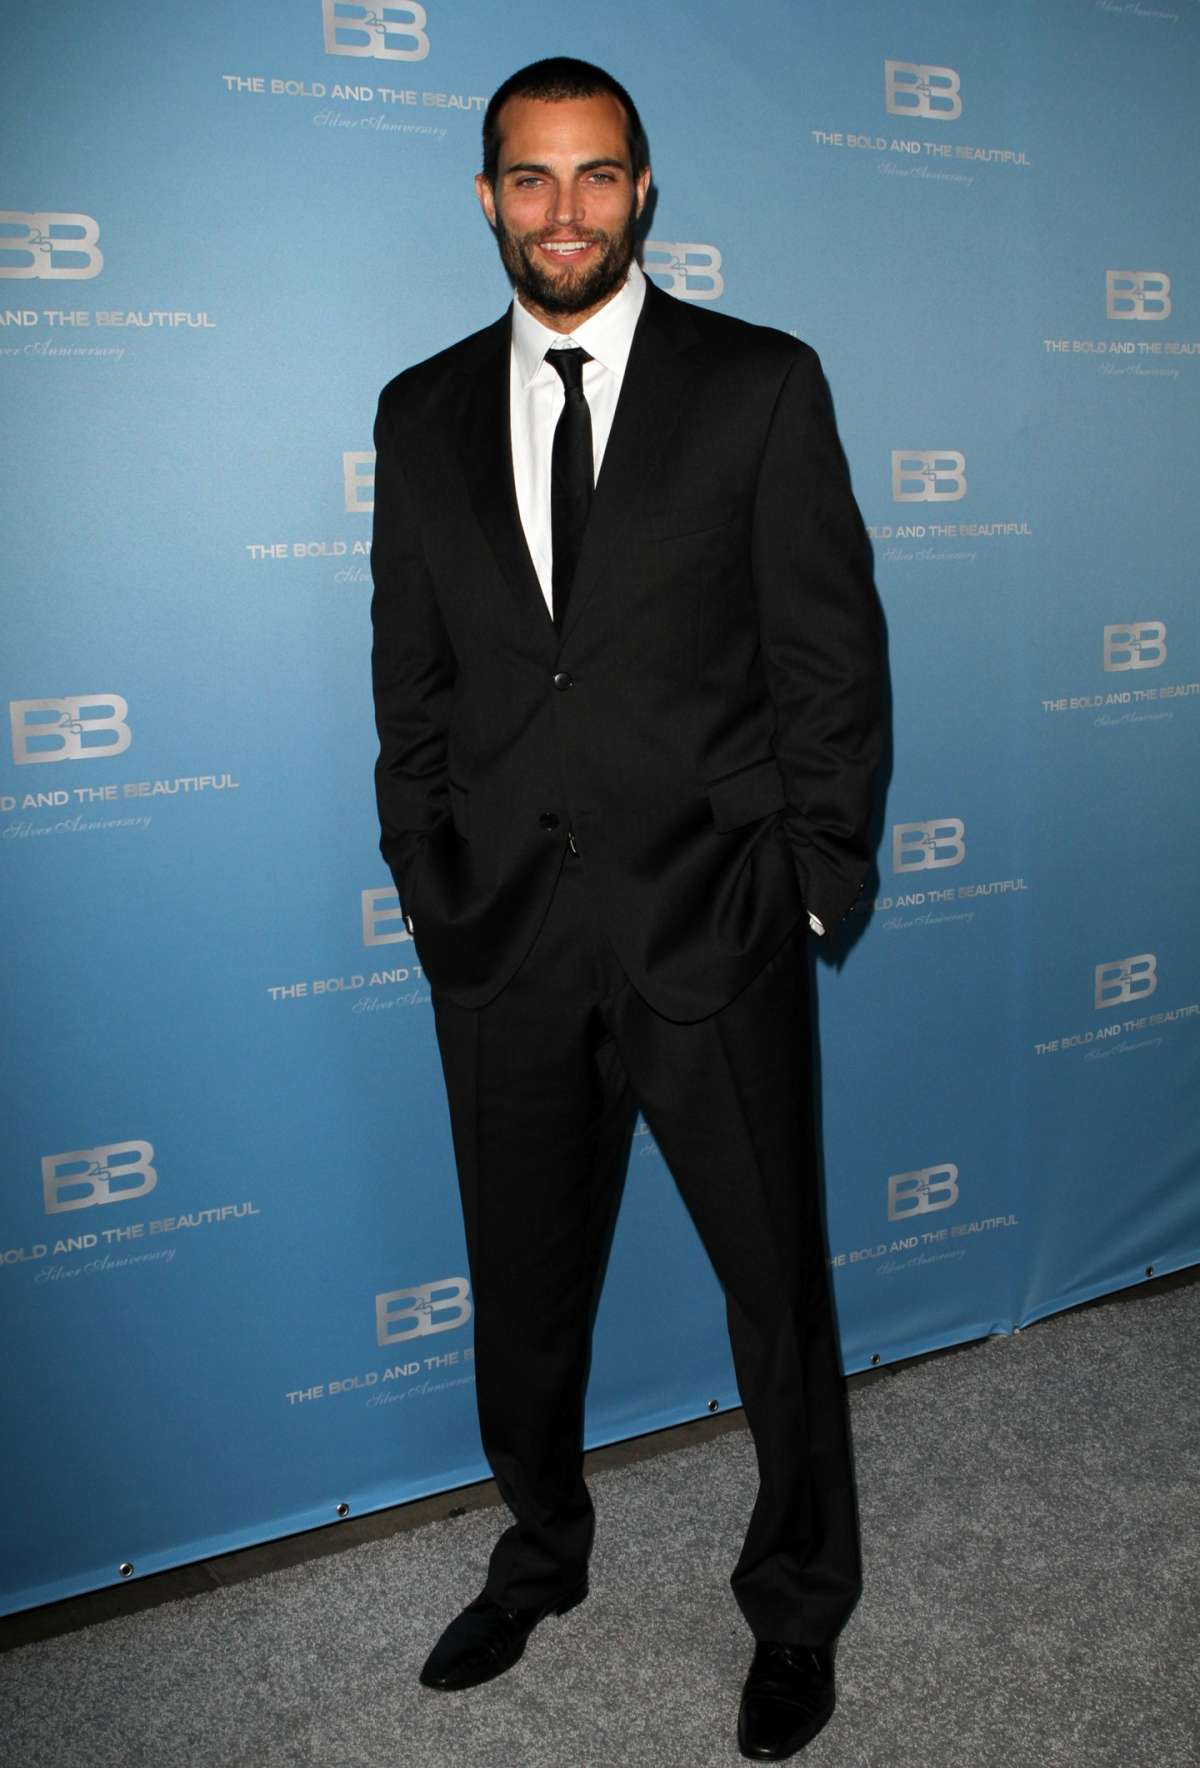 Scott Elrod al 25esimo anniversario di Beautiful nel 2012 a Los Angeles